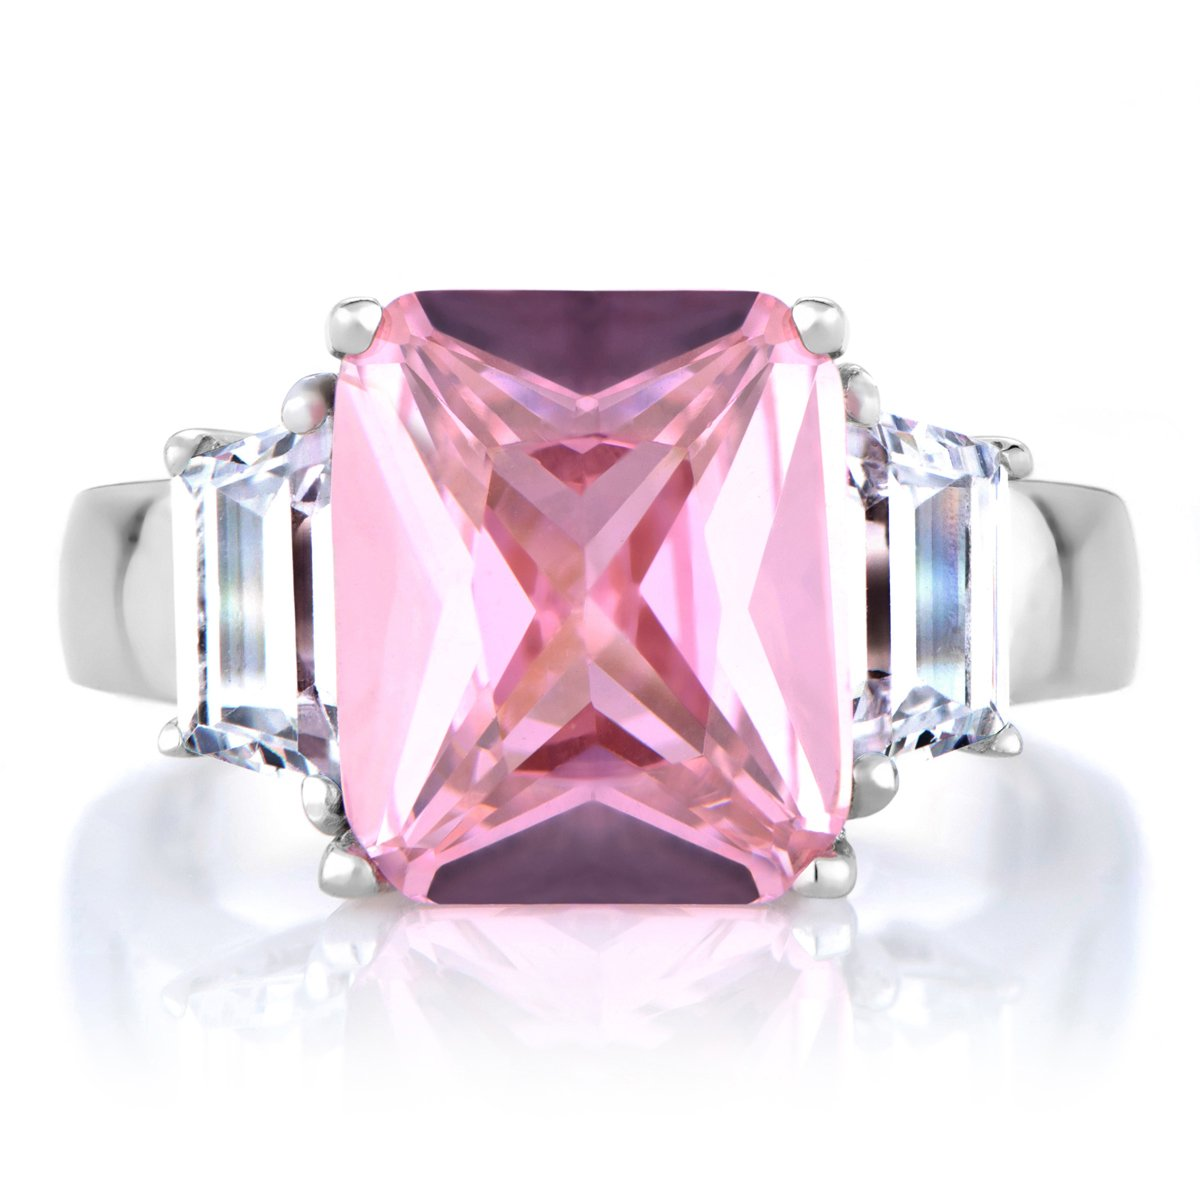 Perfectly Pink Emerald Cut CZ Engagement Ring | Amazon.com